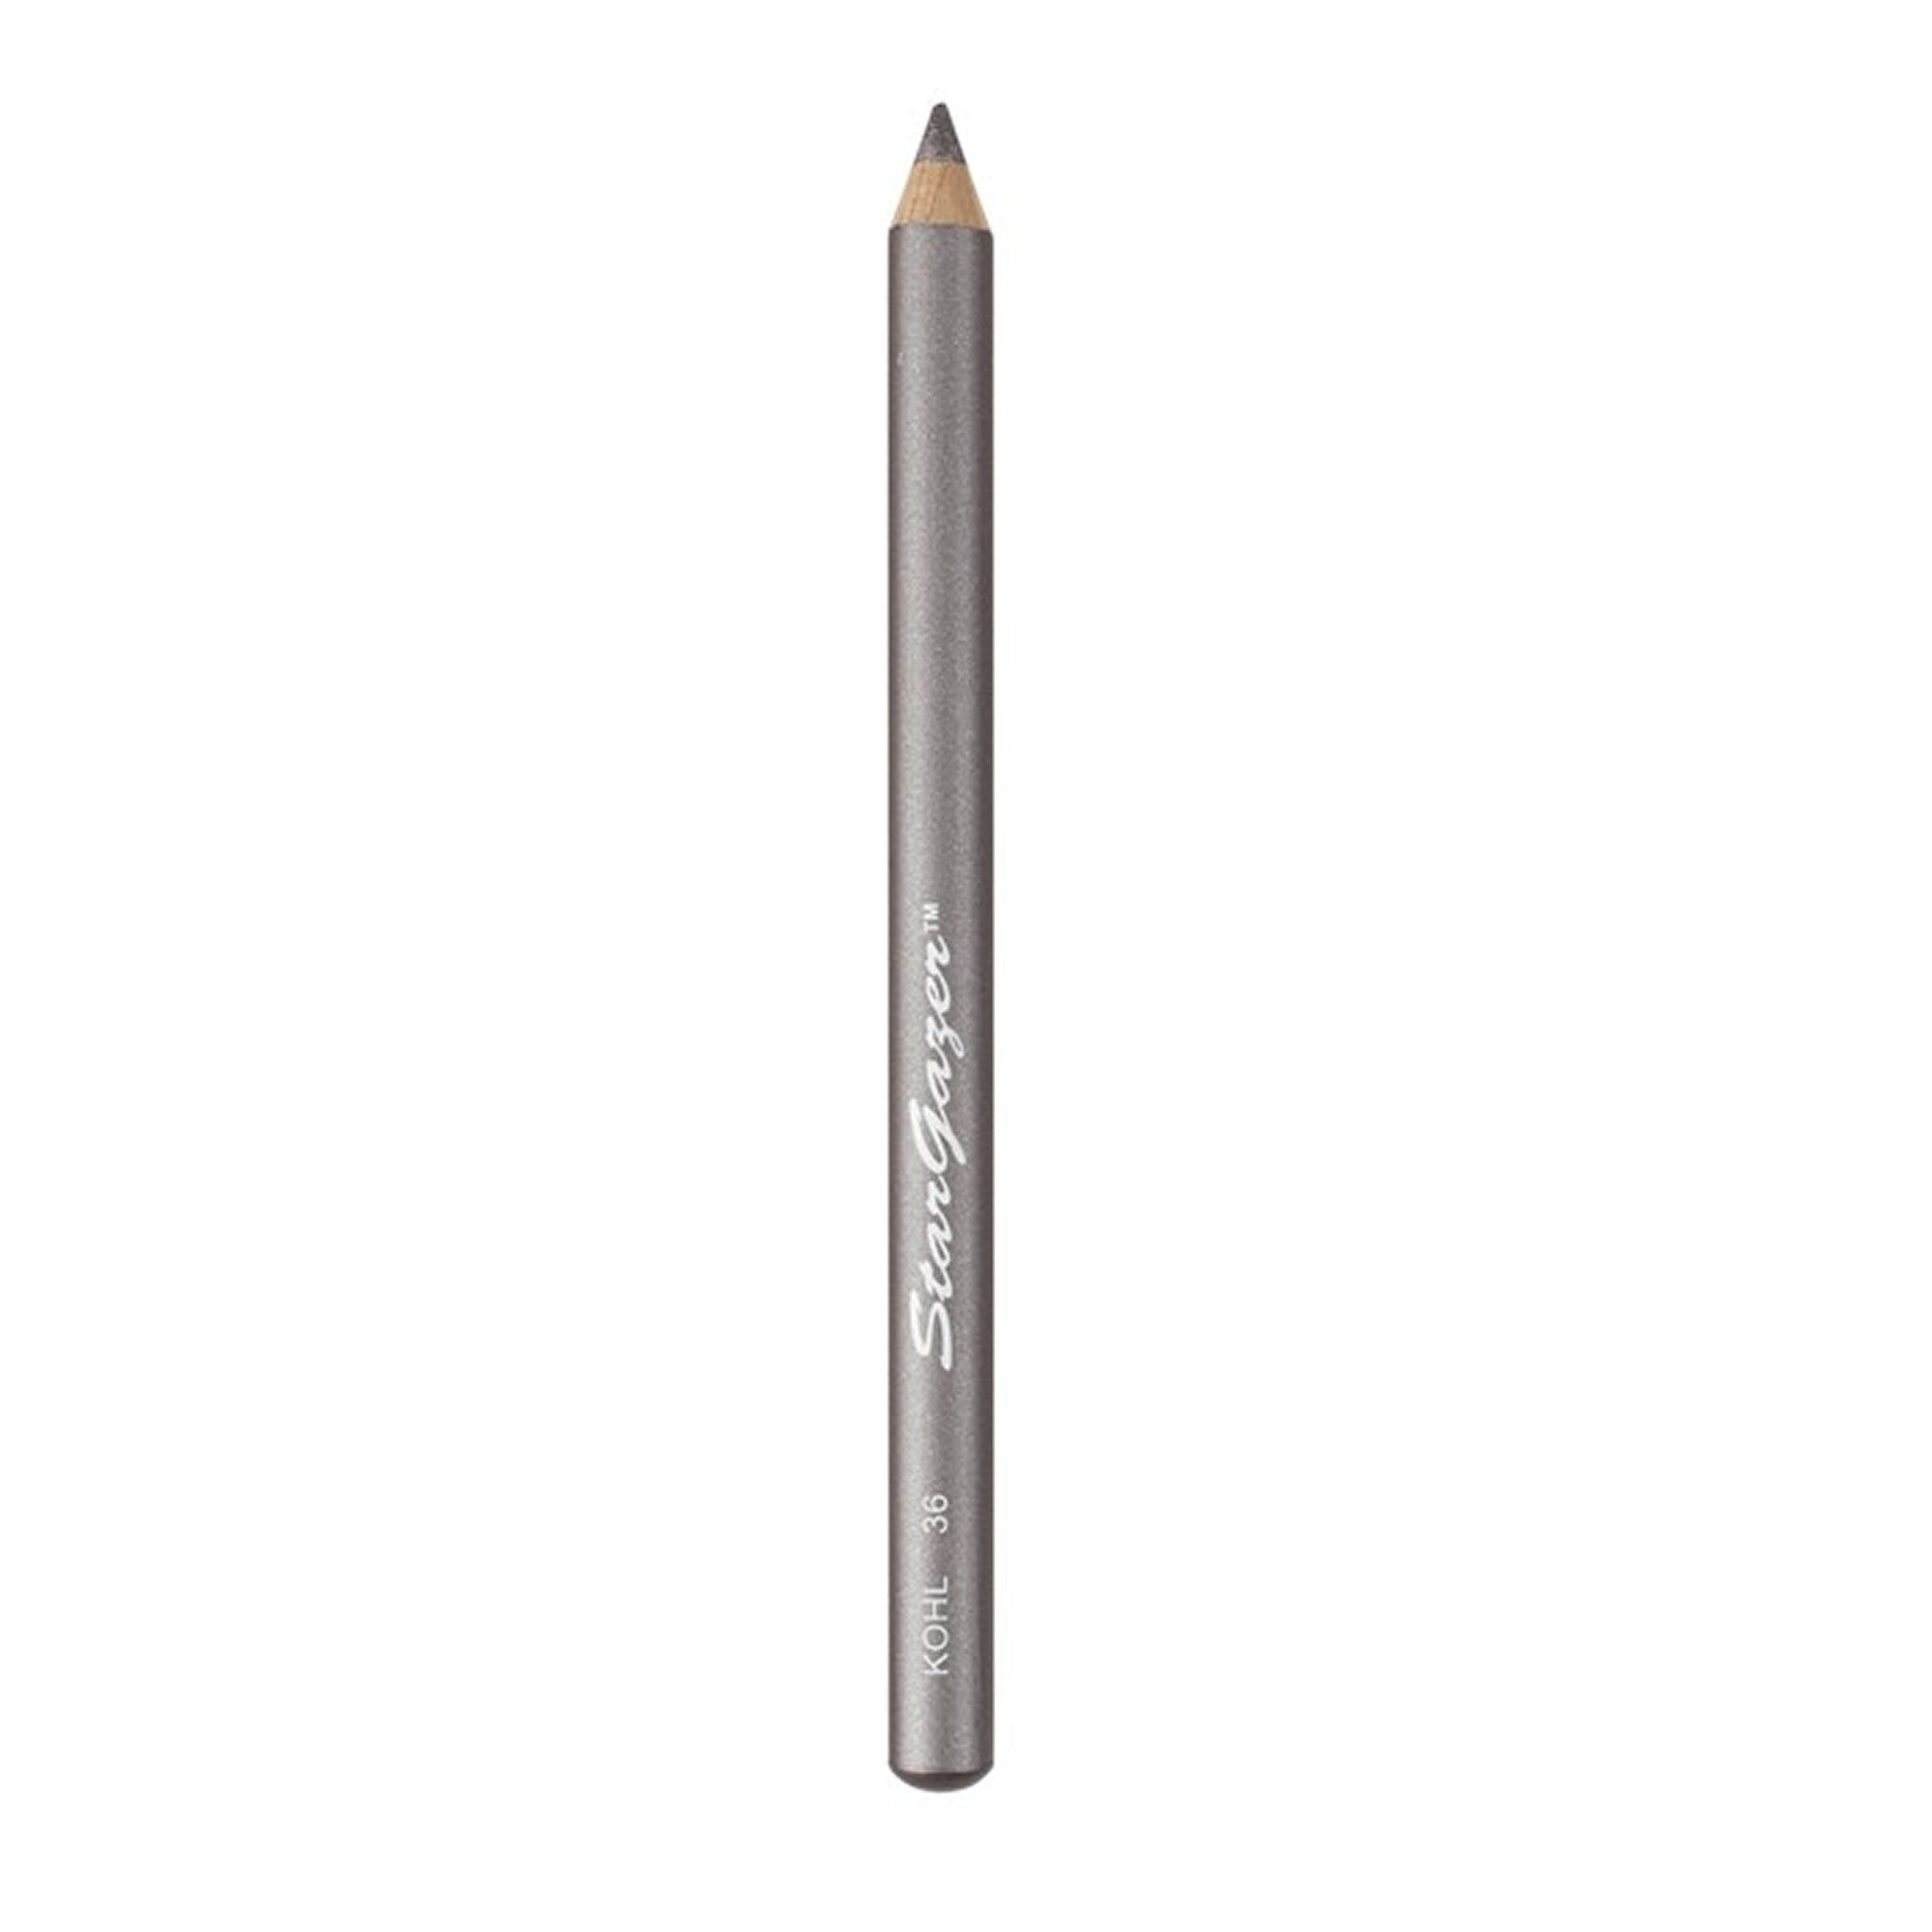 Stargazer Soft Eye Pencil - 36 - Red Carpet FX - Professional Makeup